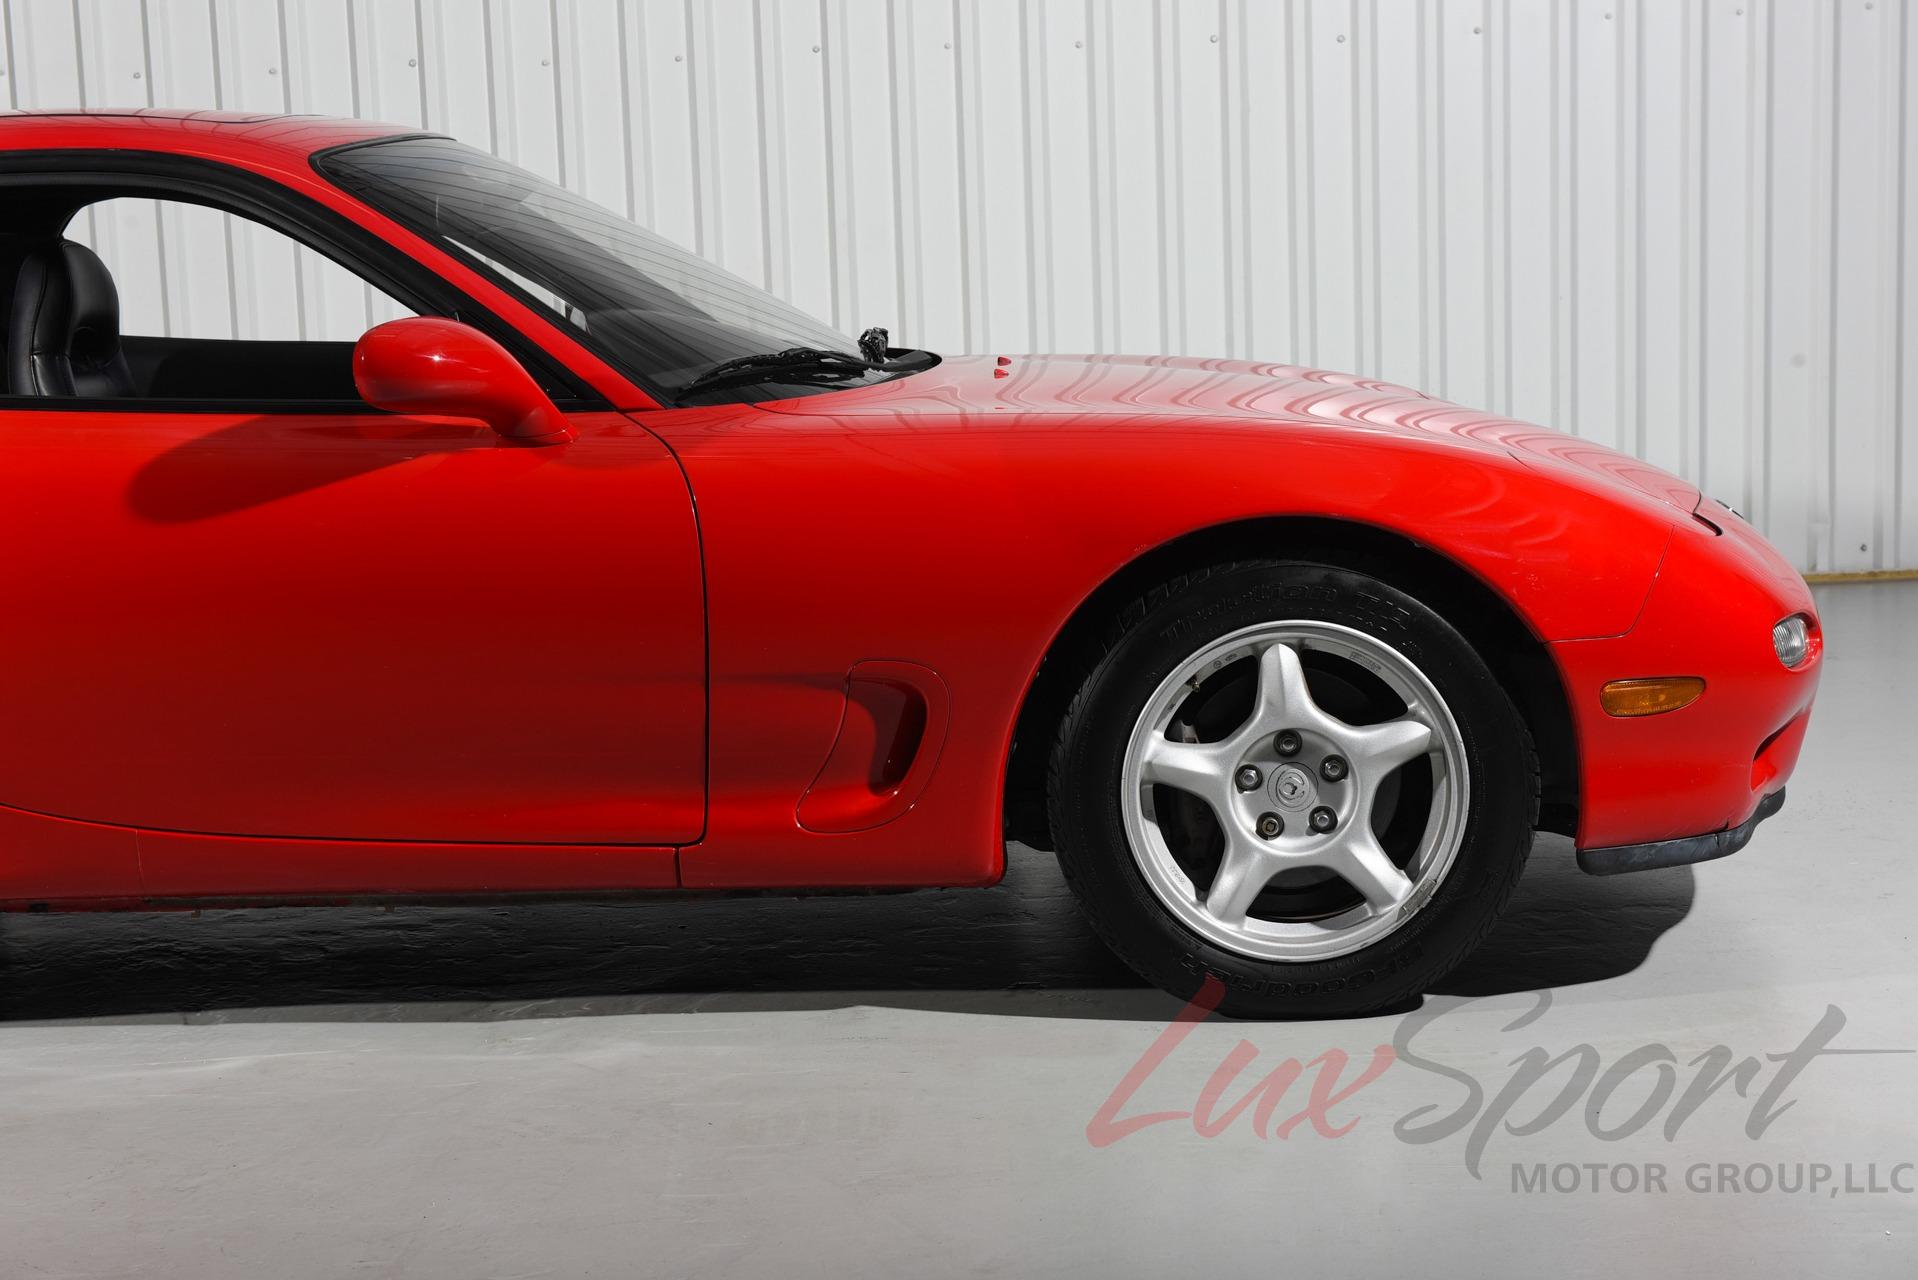 1993 mazda rx 7 twin turbo coupe stock 1993172 for sale. Black Bedroom Furniture Sets. Home Design Ideas